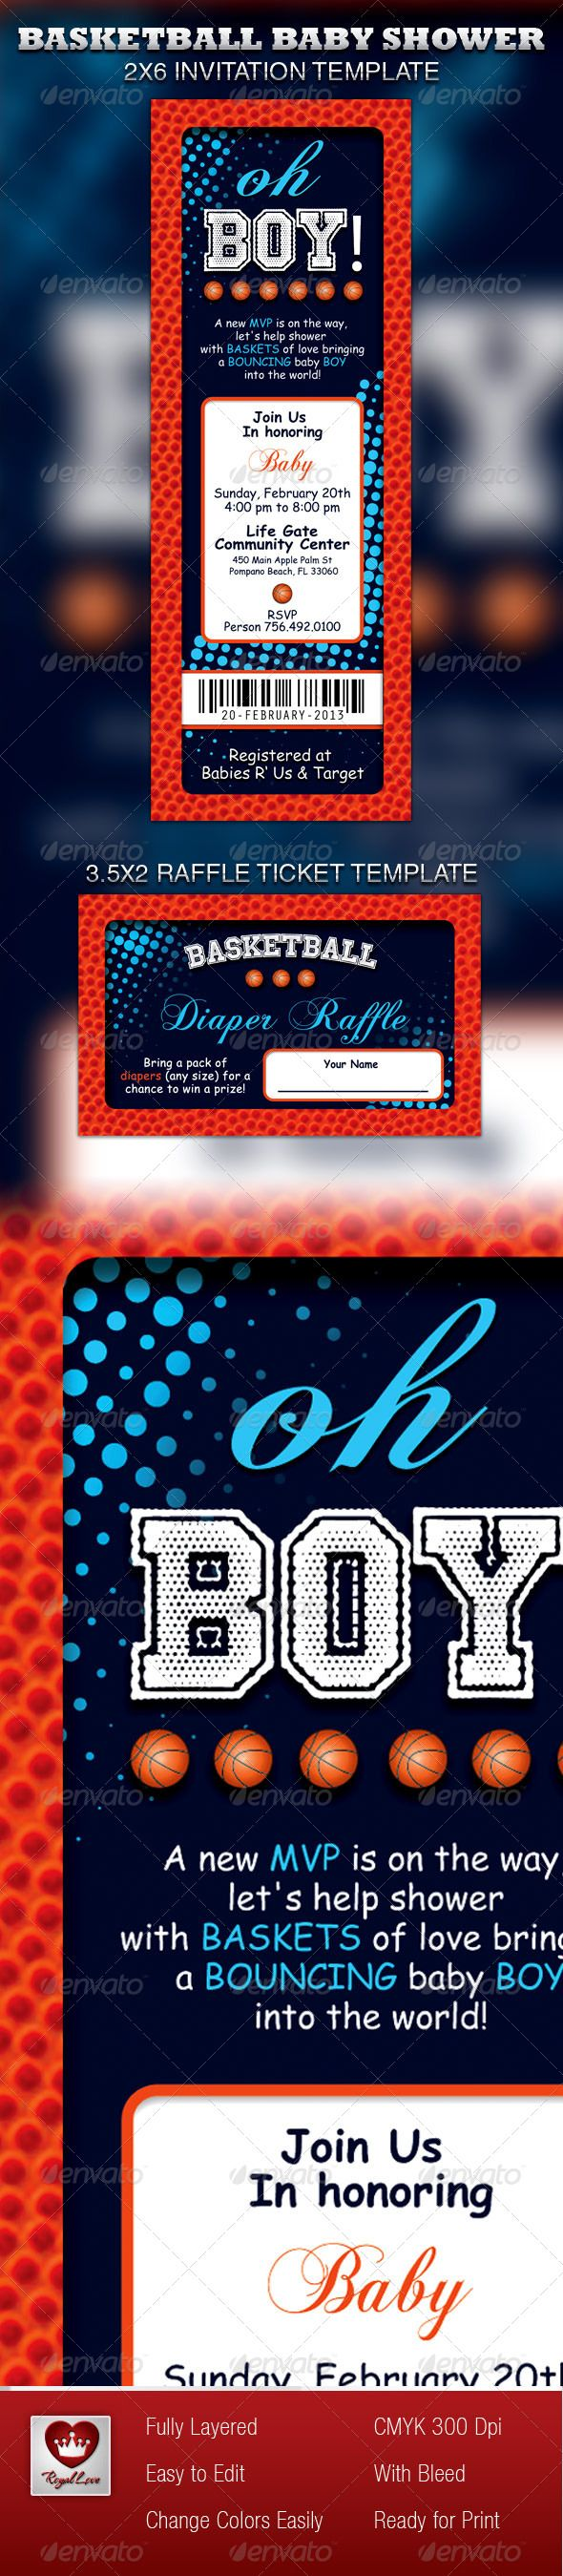 best ideas about raffle ticket printing baby basketball baby shower invitation raffle ticket